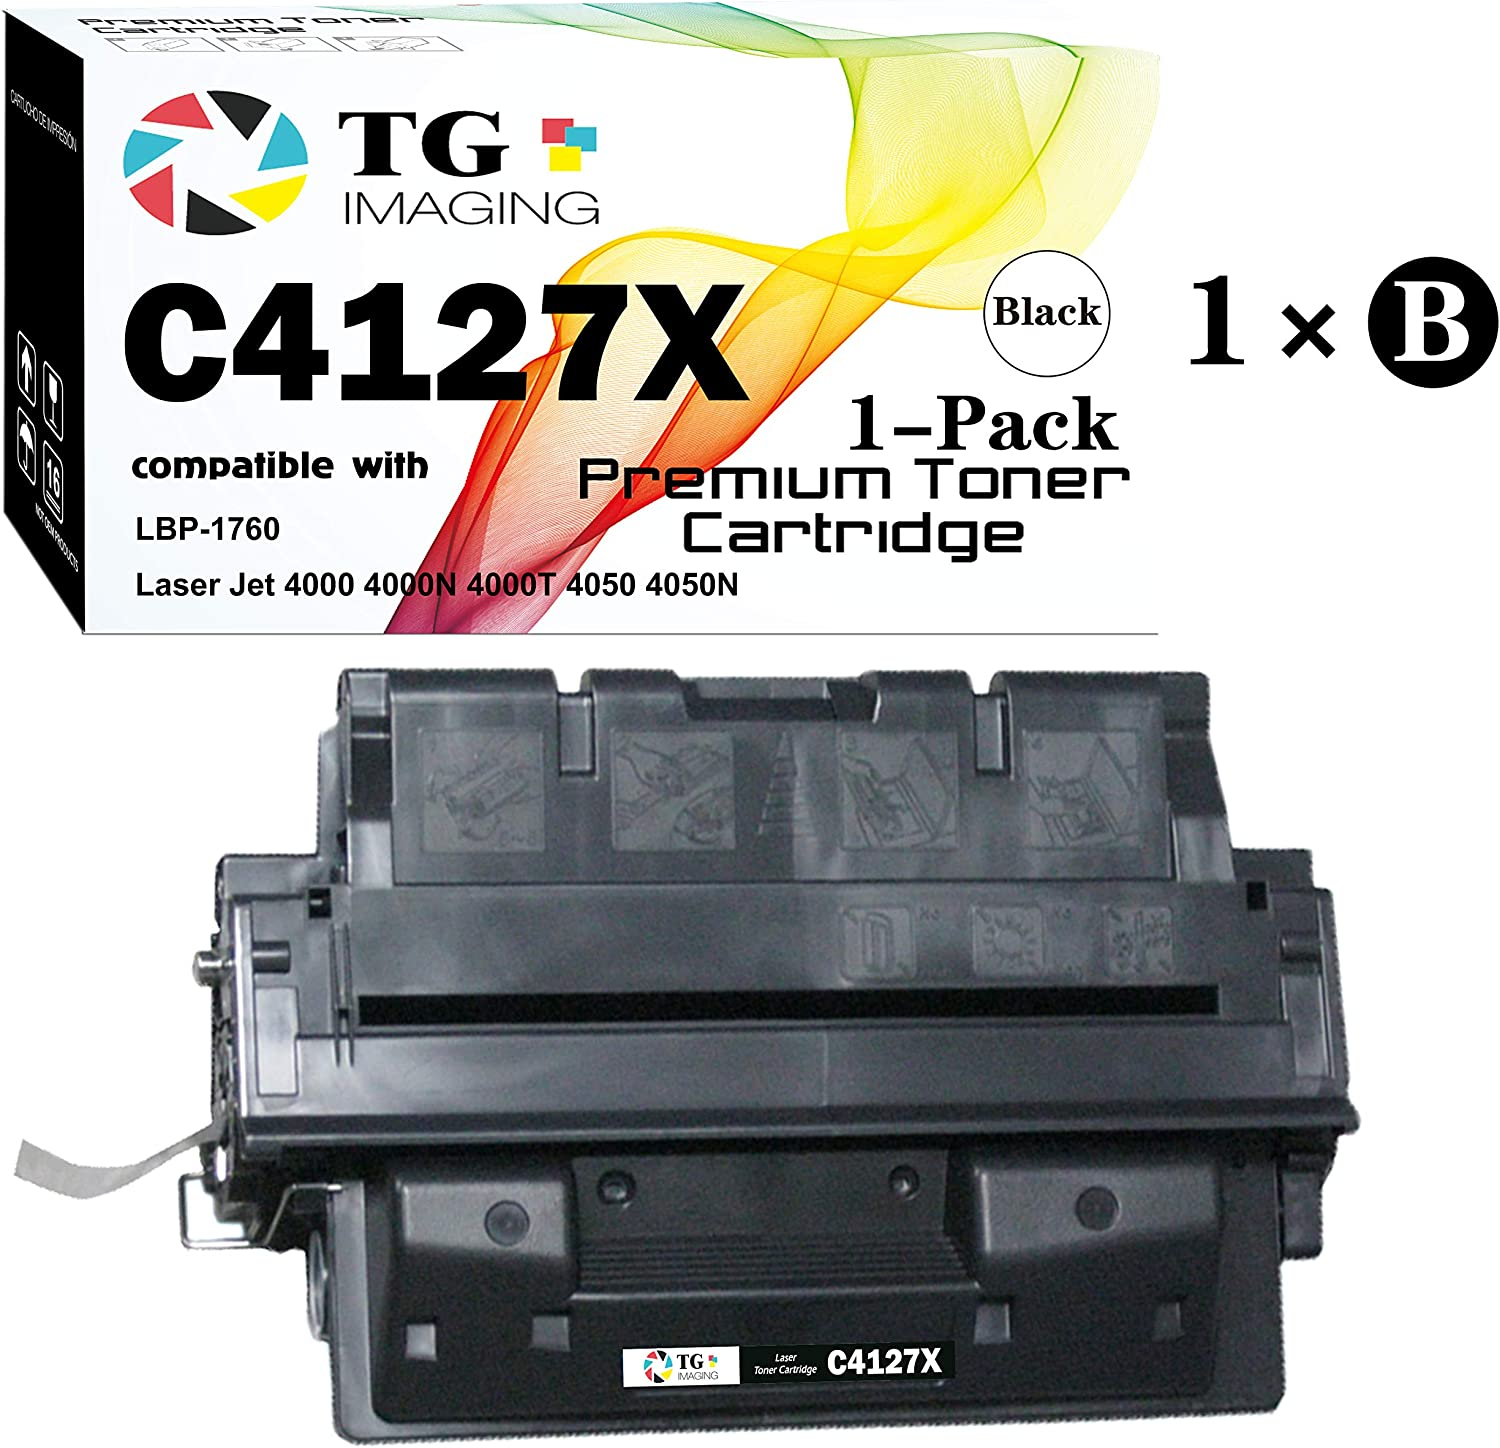 (1-Pack, High Yield) TG Imaging Compatible HP 27X C4127X Toner Cartridge C4127A 27X for use in HP Laser Jet 4000 4000N 4000T 4050 4050N LBP-1760 Printer